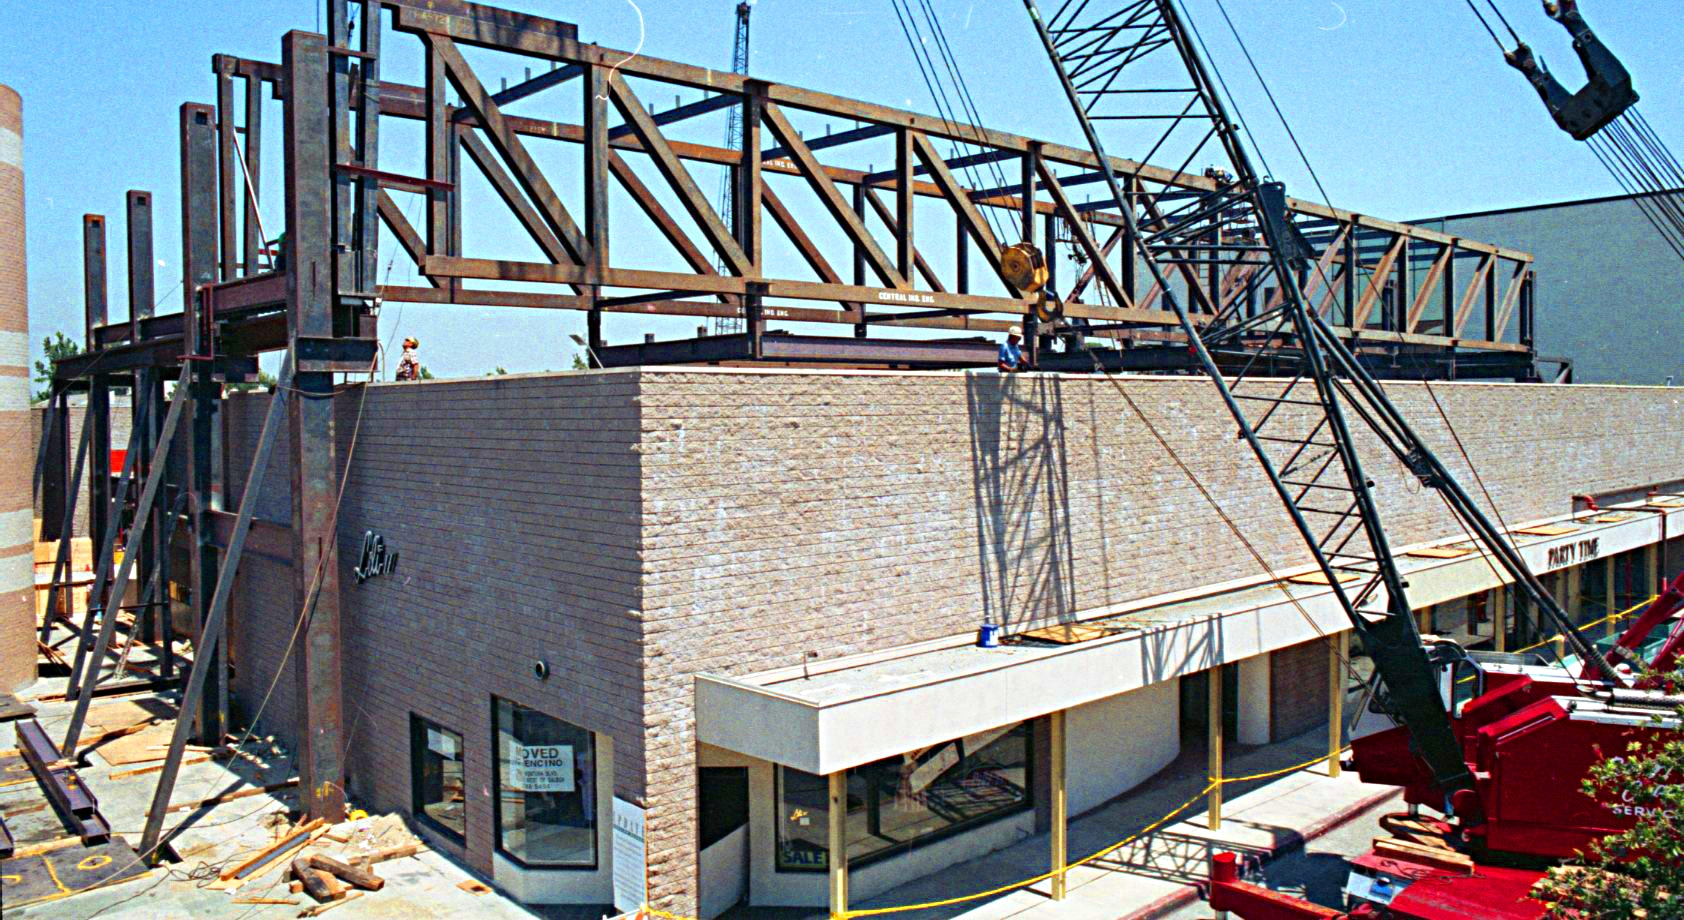 - Construction photo showings the installation of long span trusses over existing tenant buildings